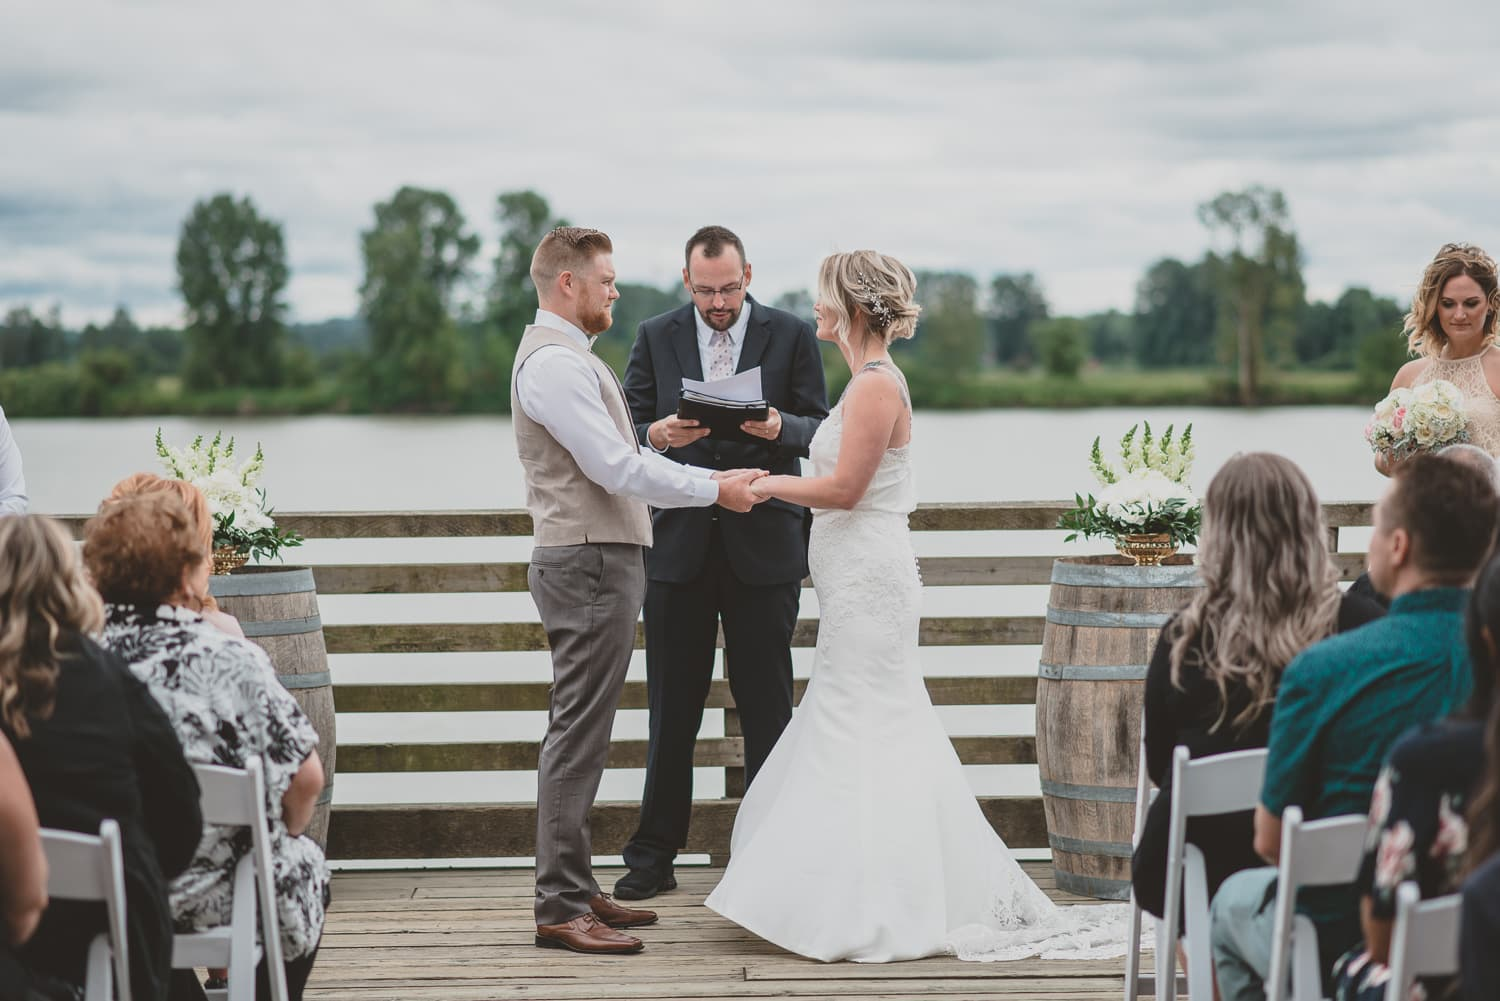 south bonson community centre wedding ceremony on dock